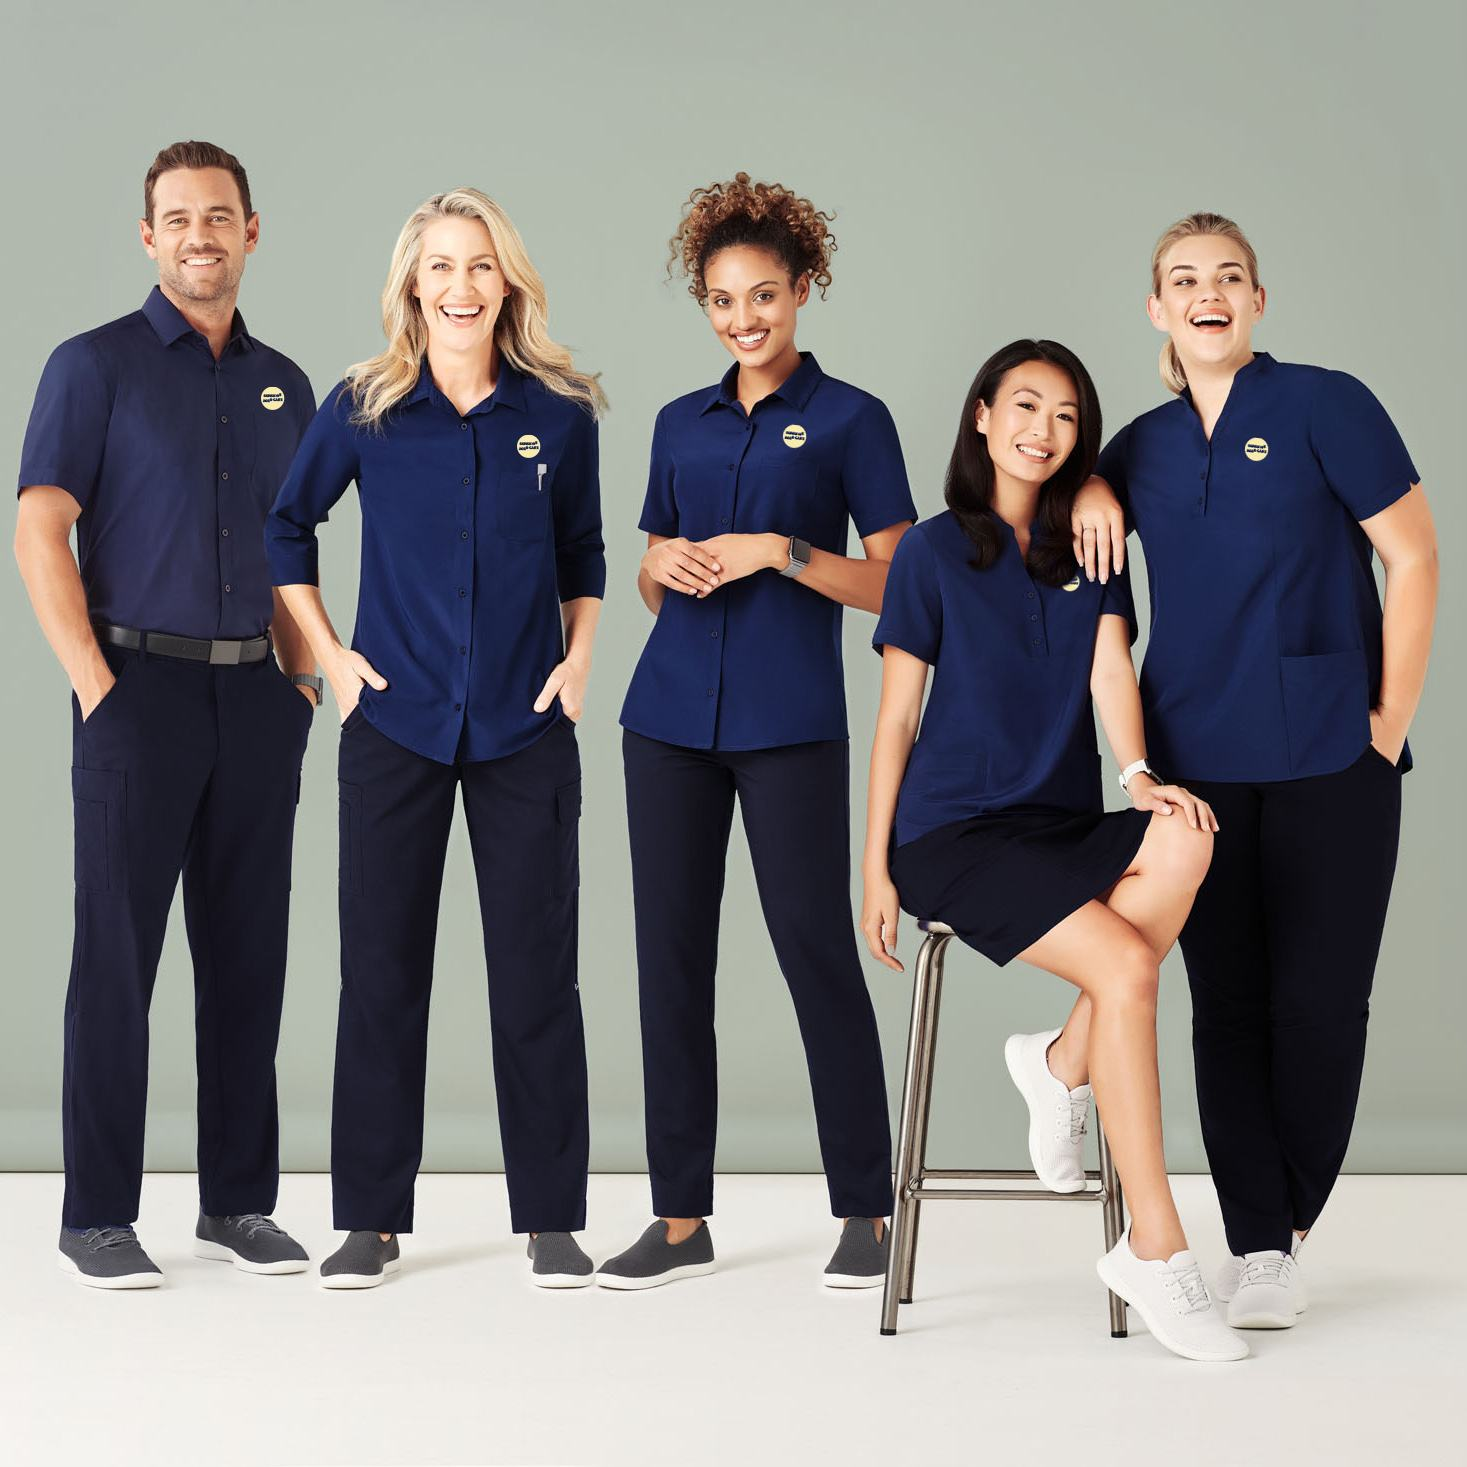 Experts in Supplying and Fitting Aged Care Uniforms | Healthcare Uniforms  Australia